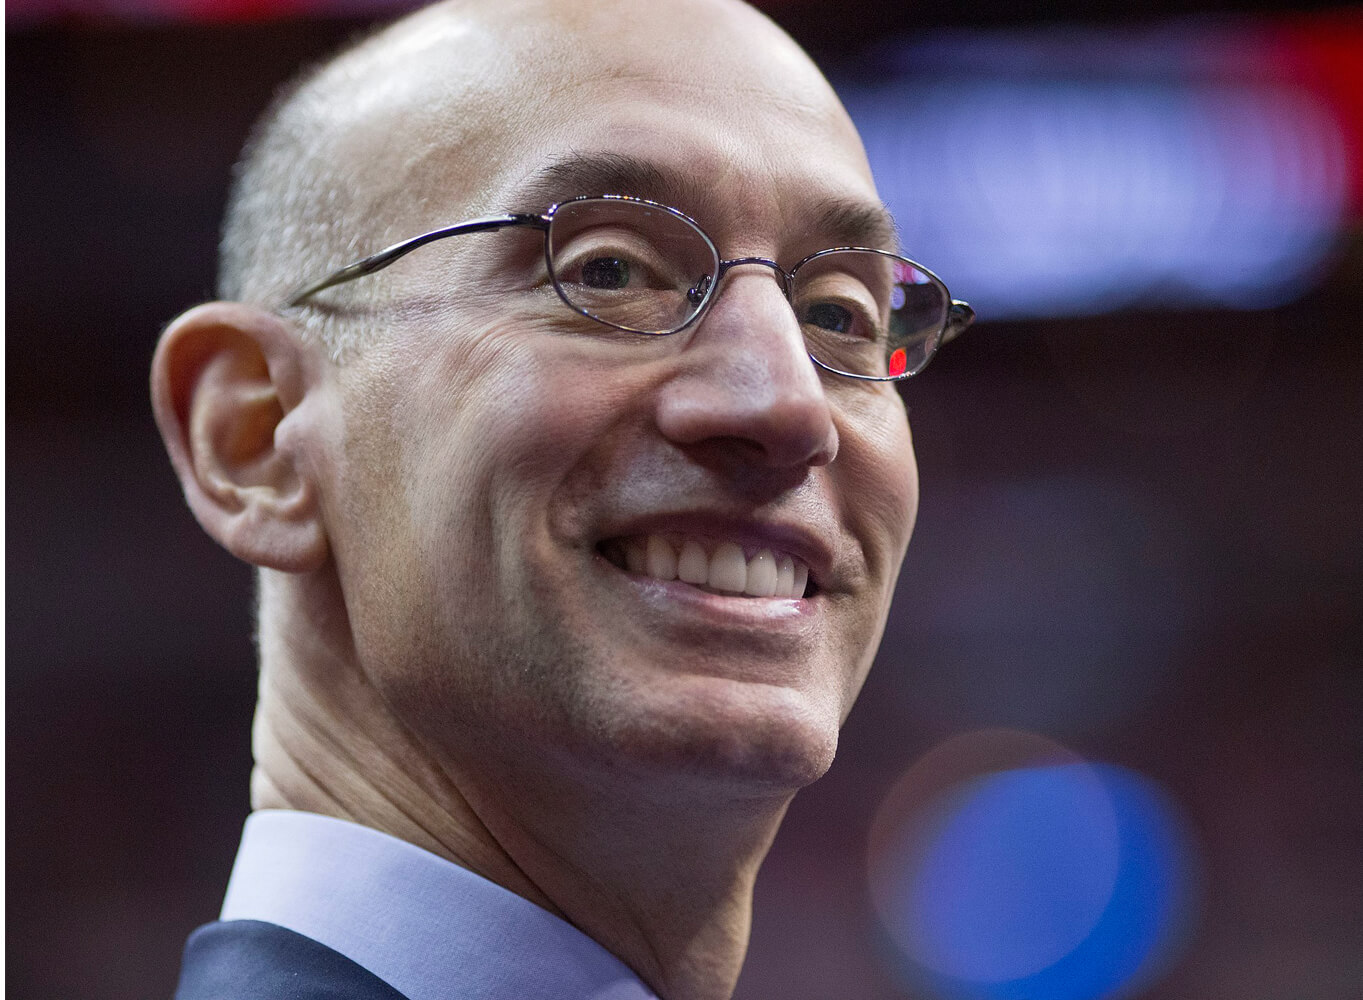 Adam_Silver_Headshot-crop